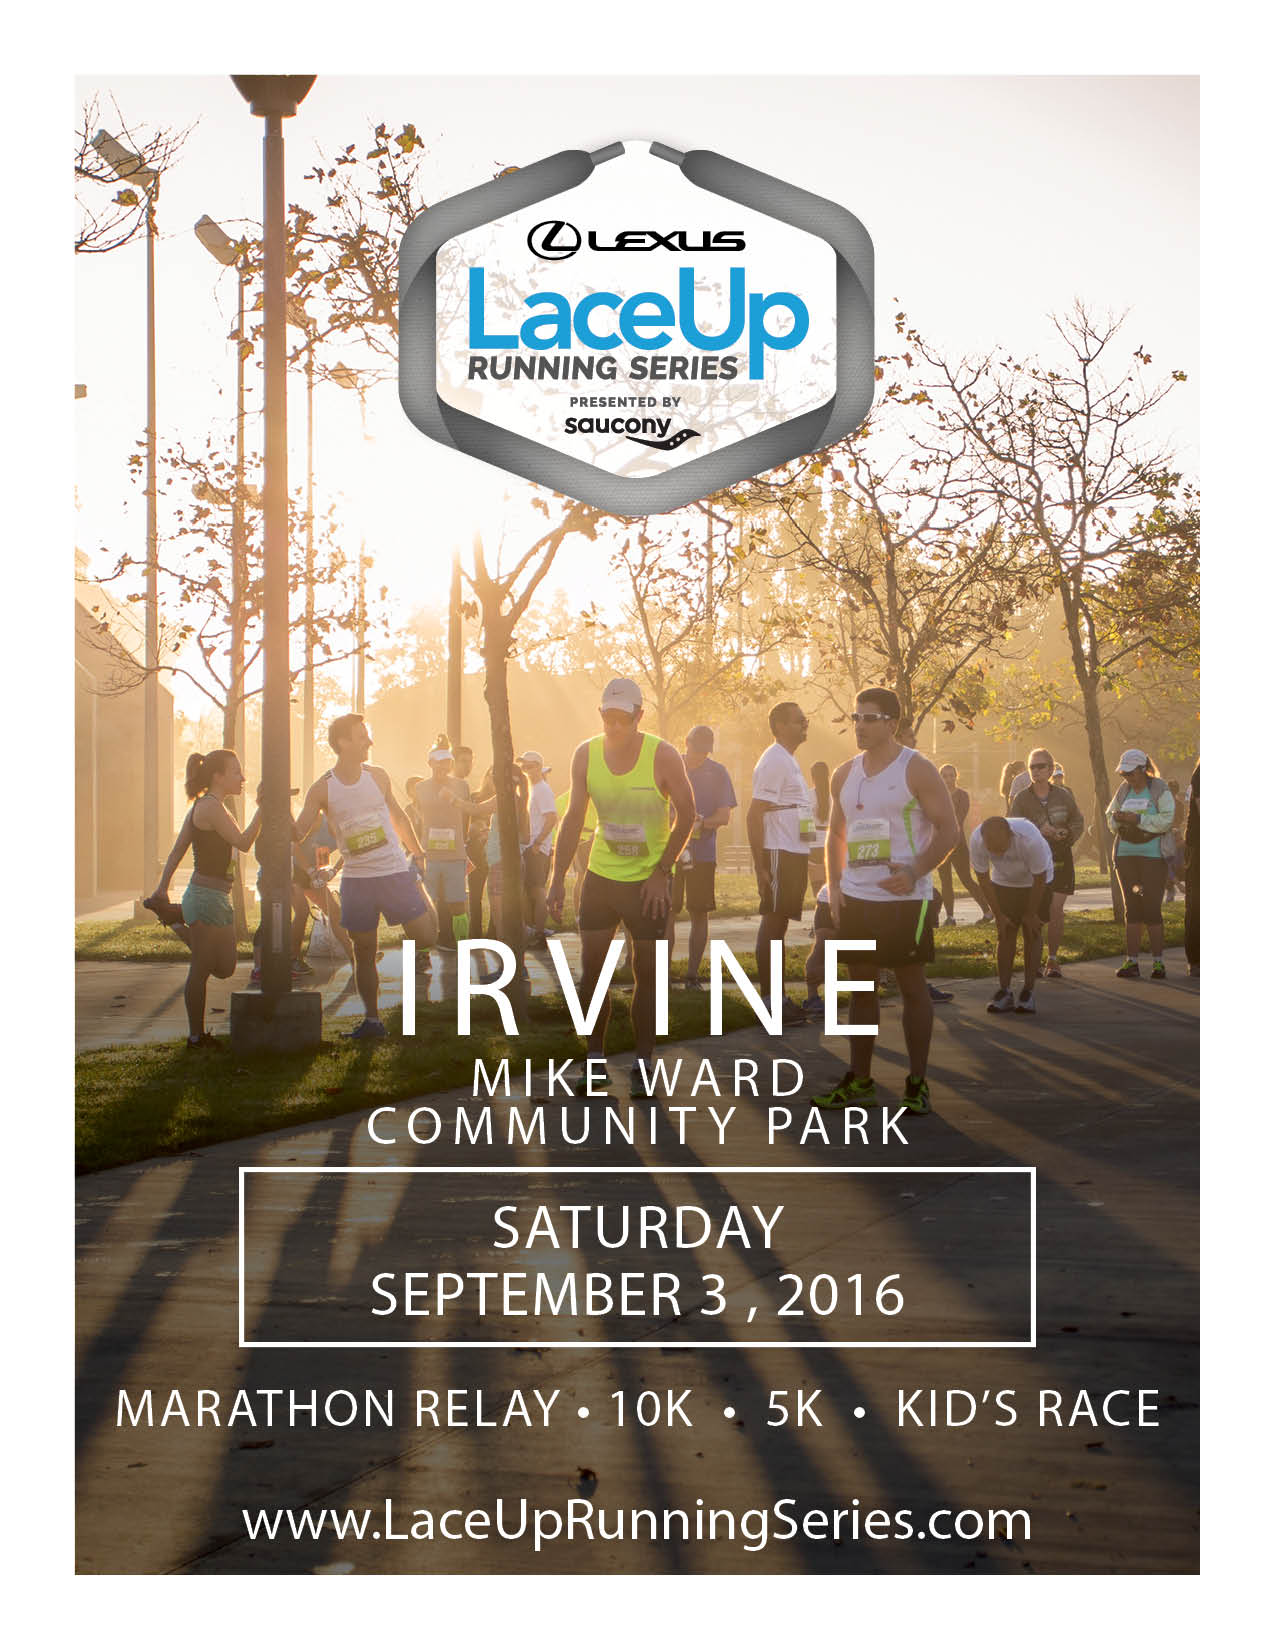 Join me in Irvine on Saturday, September 3 for the first race in the Lexus LaceUp Running Series!